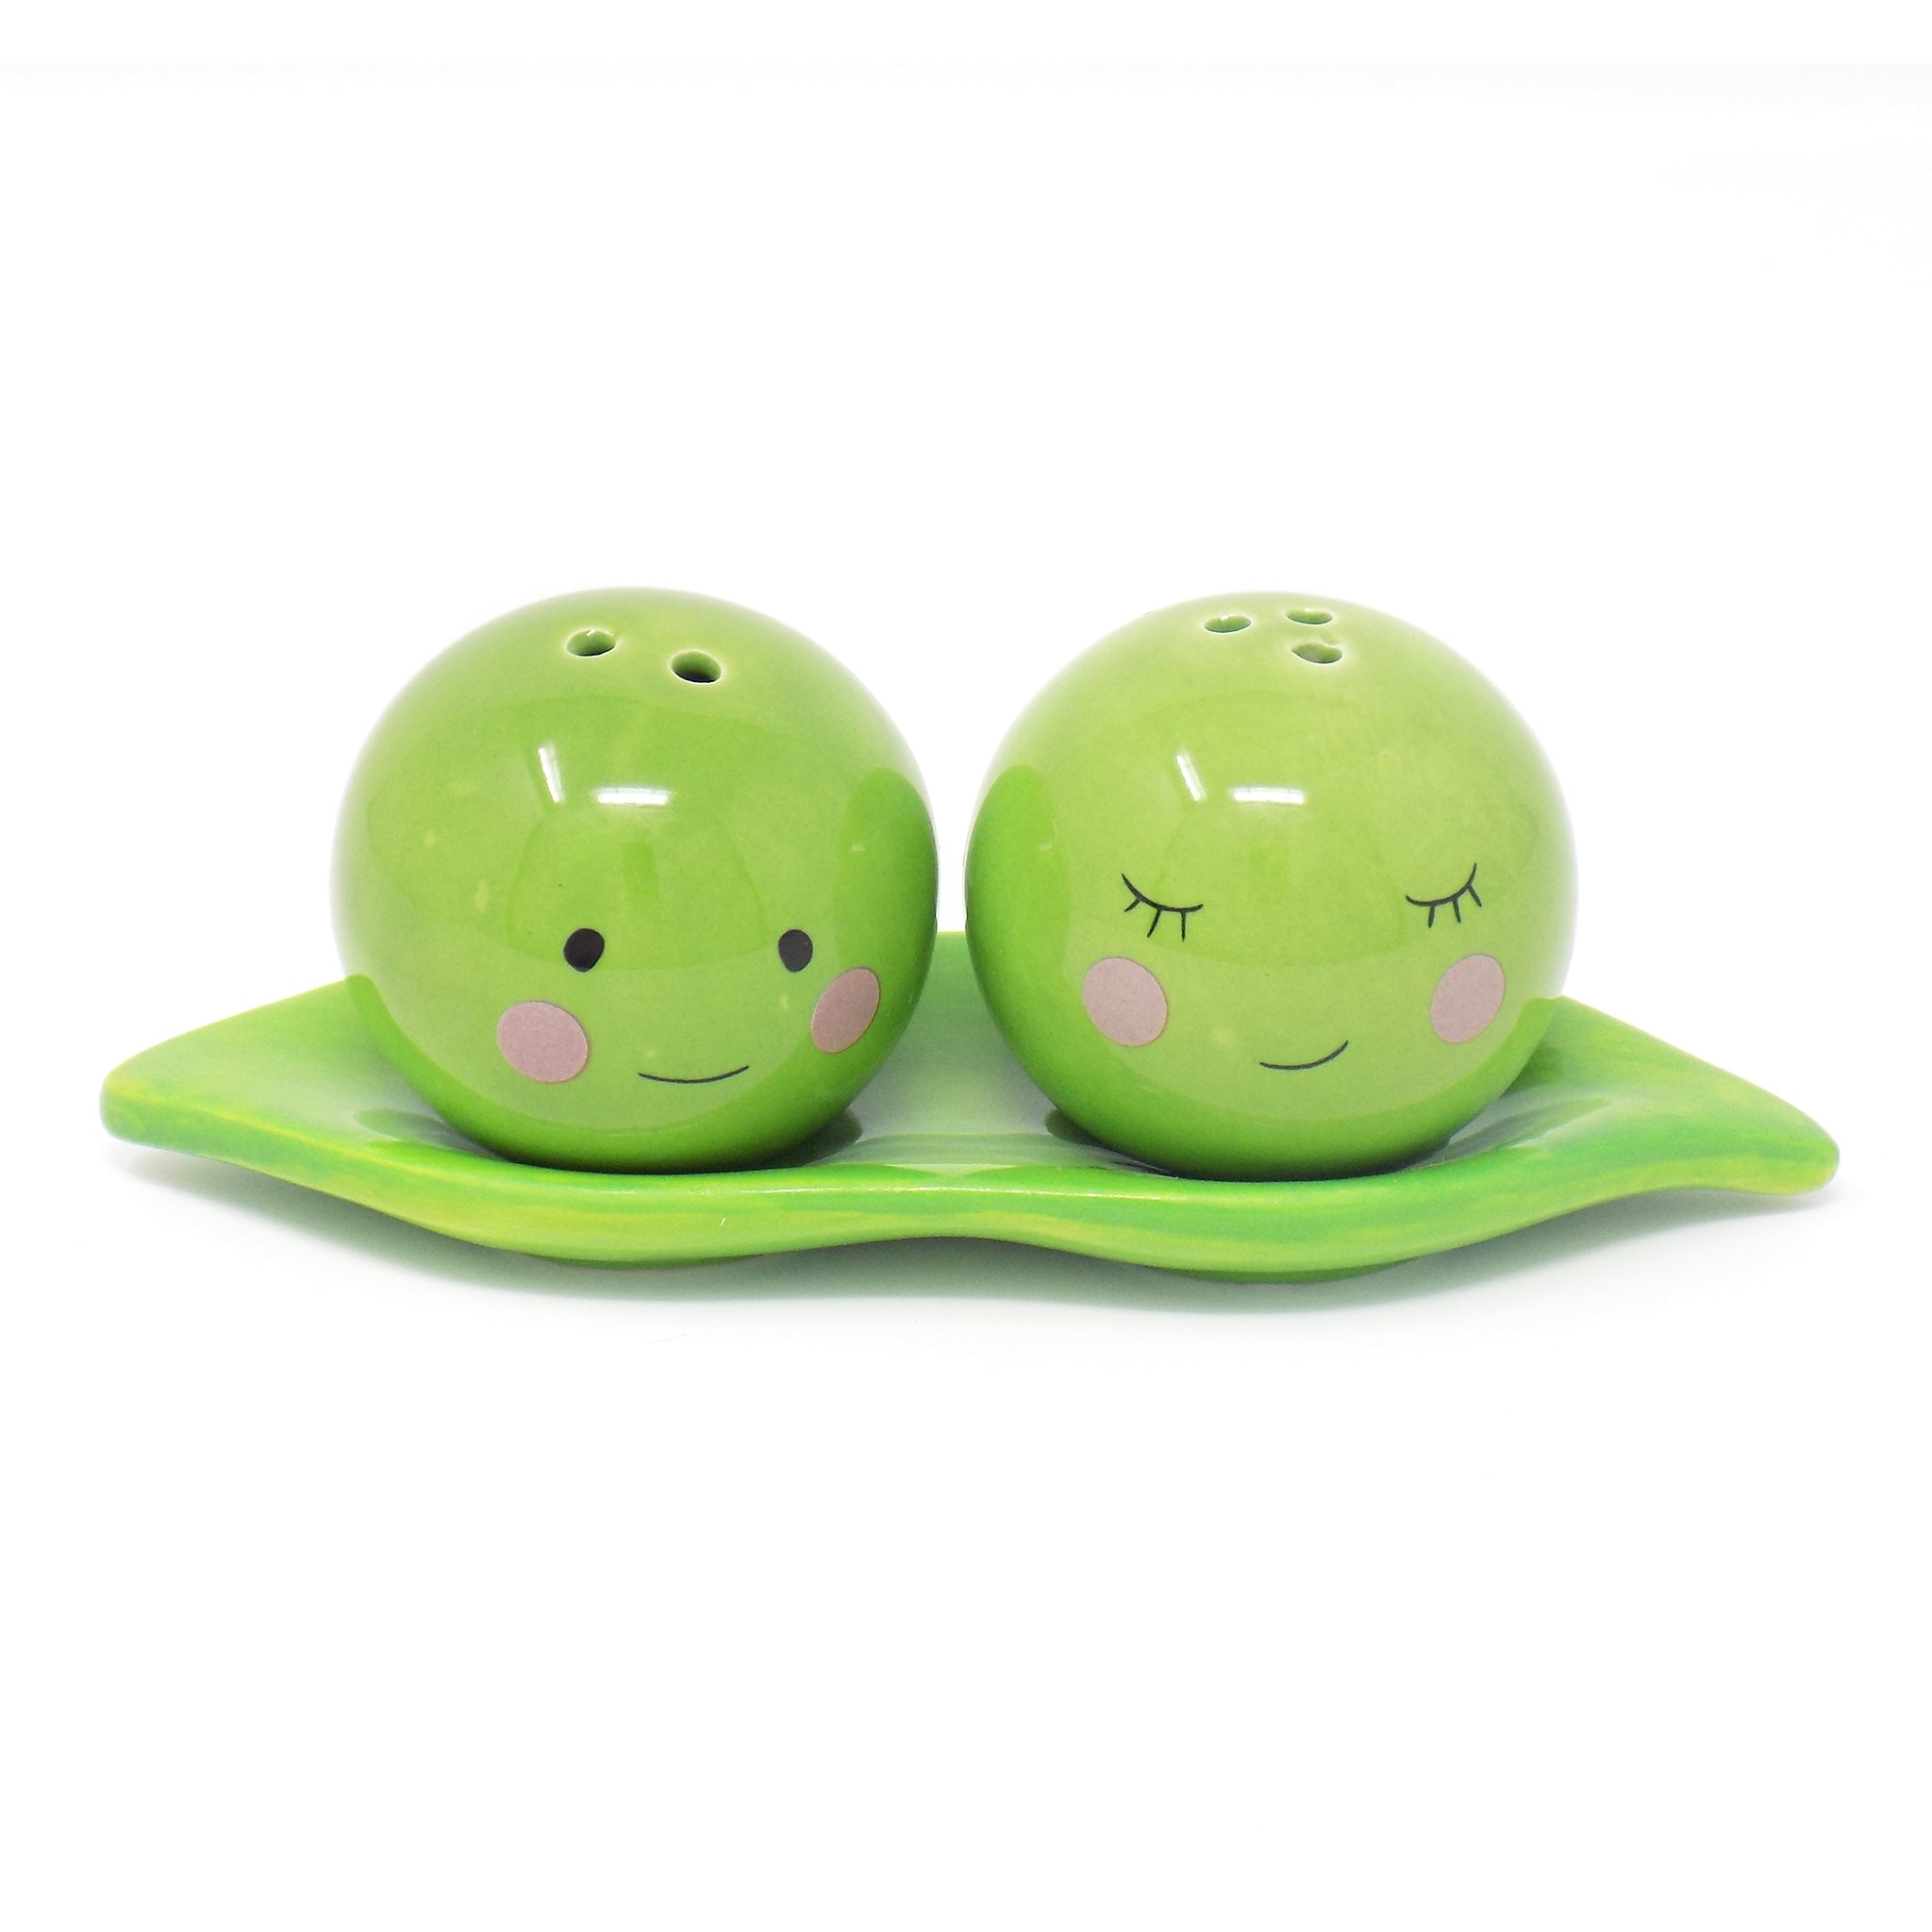 Peas In A Pod Salt & Pepper Shakers